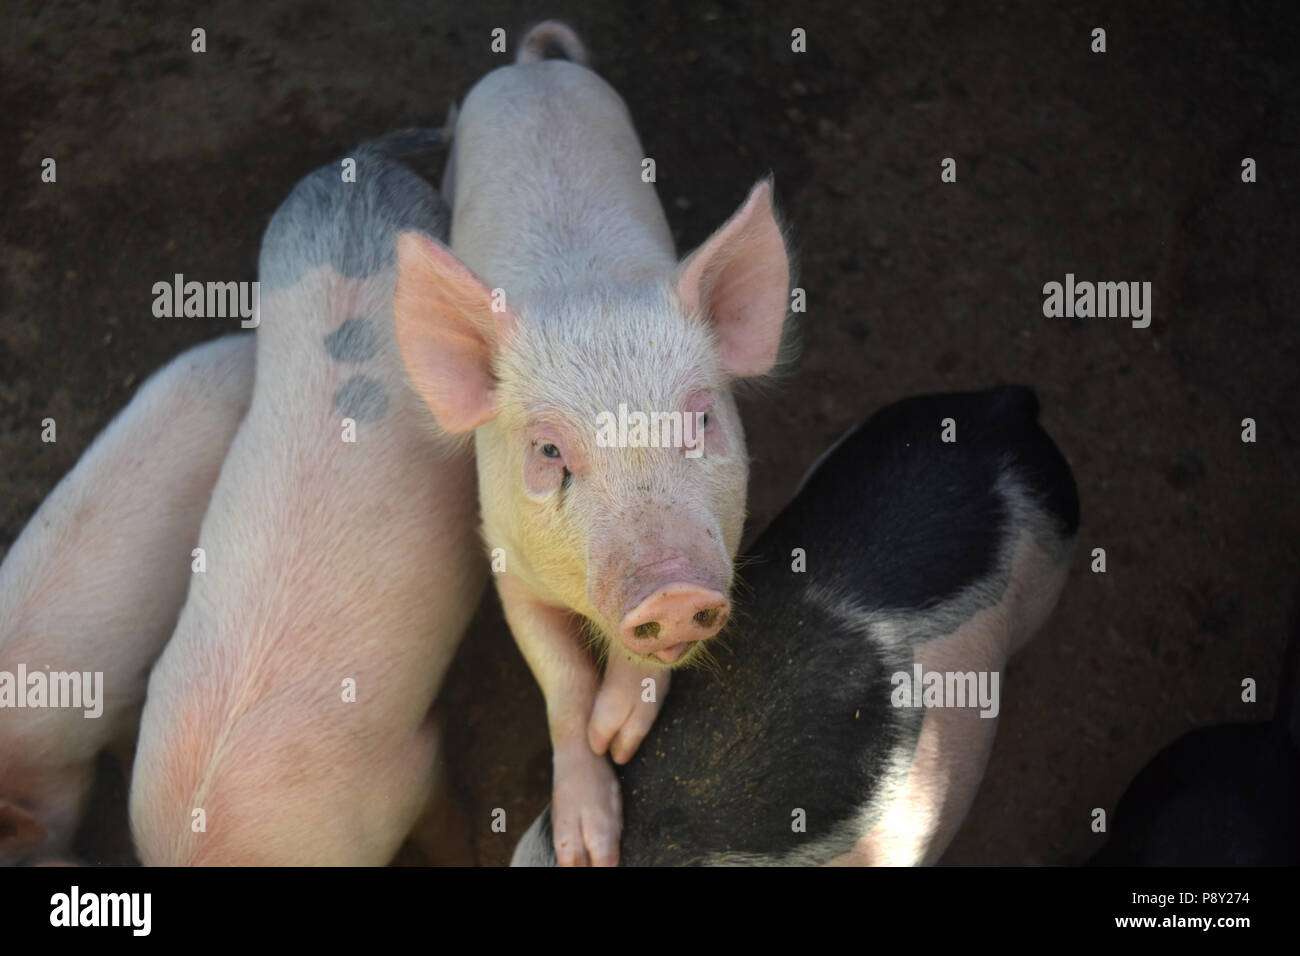 A cute piglet stepping on other pigs to get higher. - Stock Image